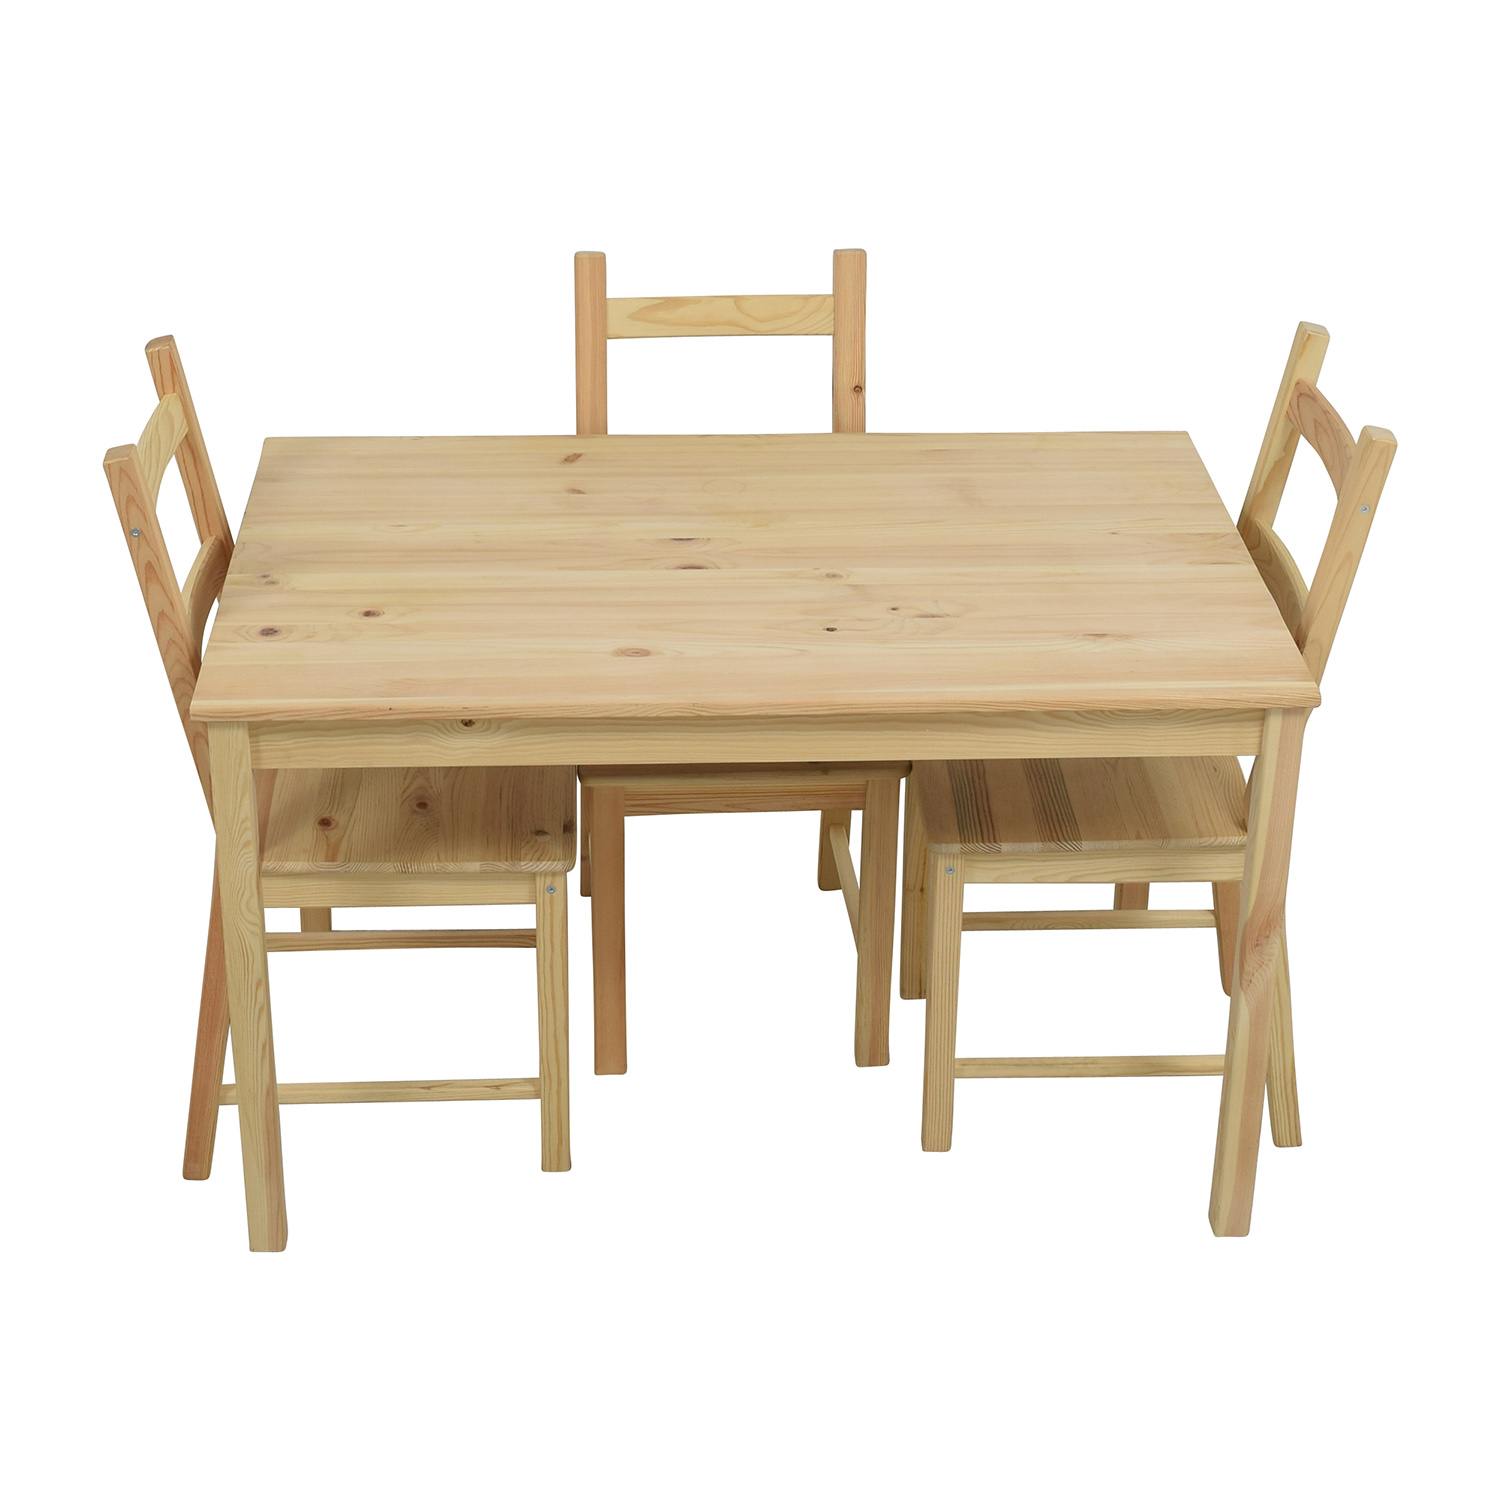 51 Off Ikea Ingo Pine Table With Ivar Chairs Tables